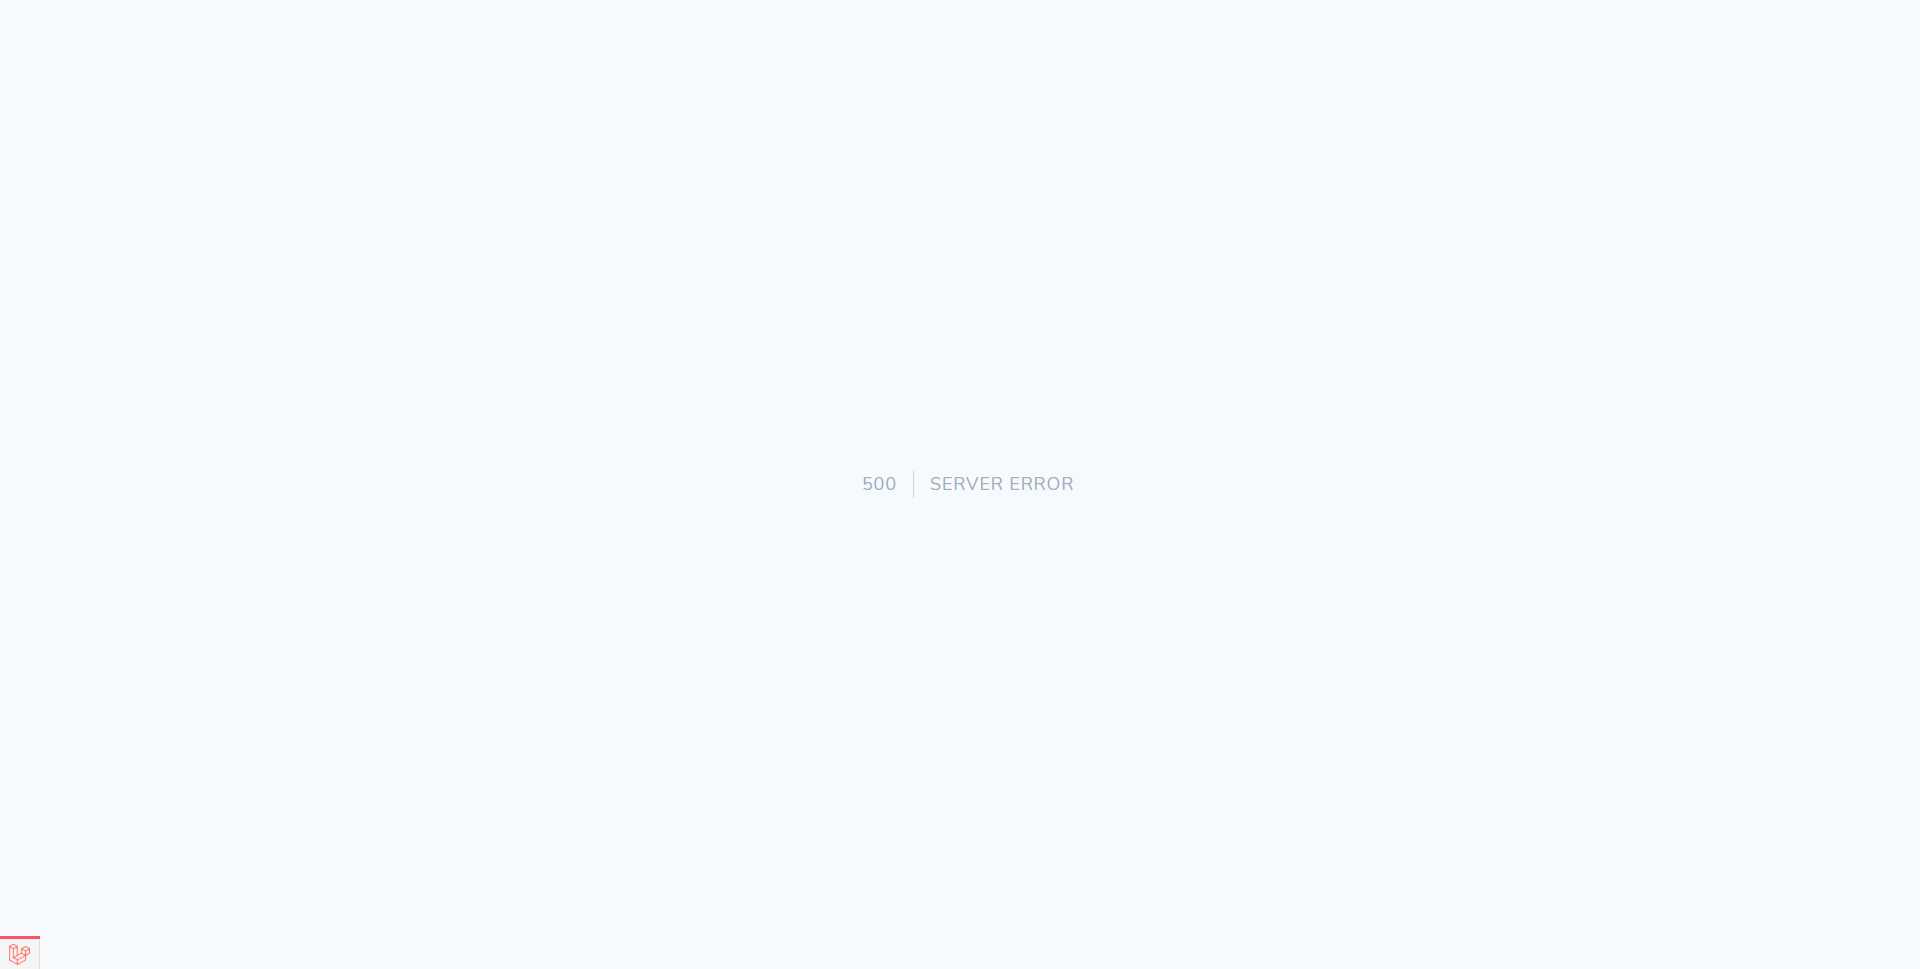 The default Statamic error page